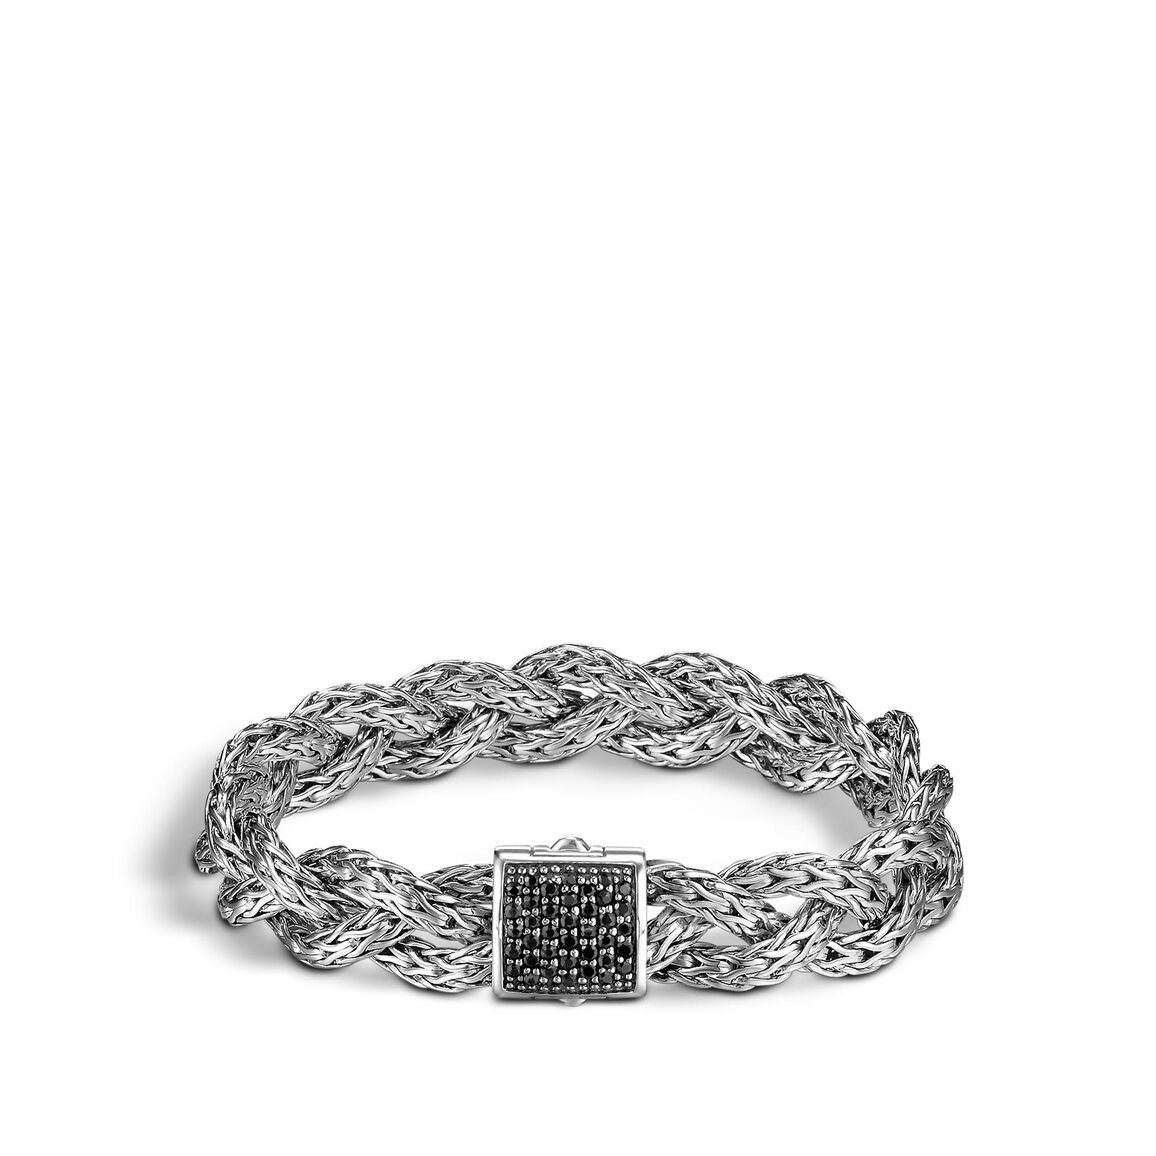 Braided Chain 11MM Bracelet in Silver with Gemstone